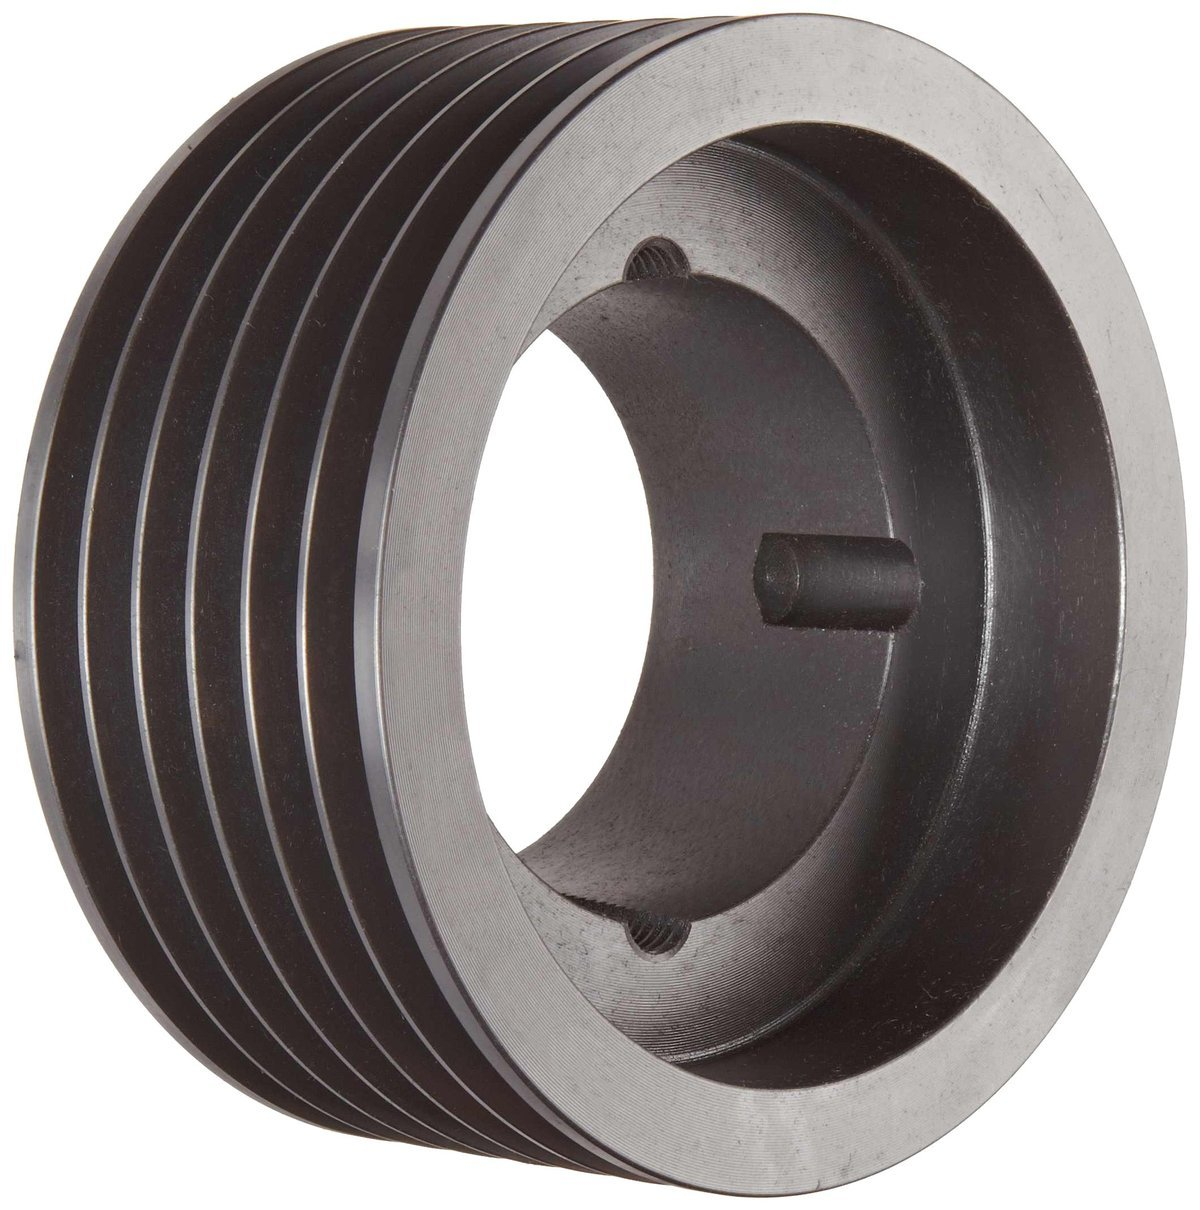 TL SPB180X6.3020 Ametric Metric 180 mm Outside Diameter, 6 Groove SPB/17 Dynamically Balanced Cast Iron V-Belt Pulley/Sheave,for 3020 Taper Lock Bushing, (Mfg Code 1-013)